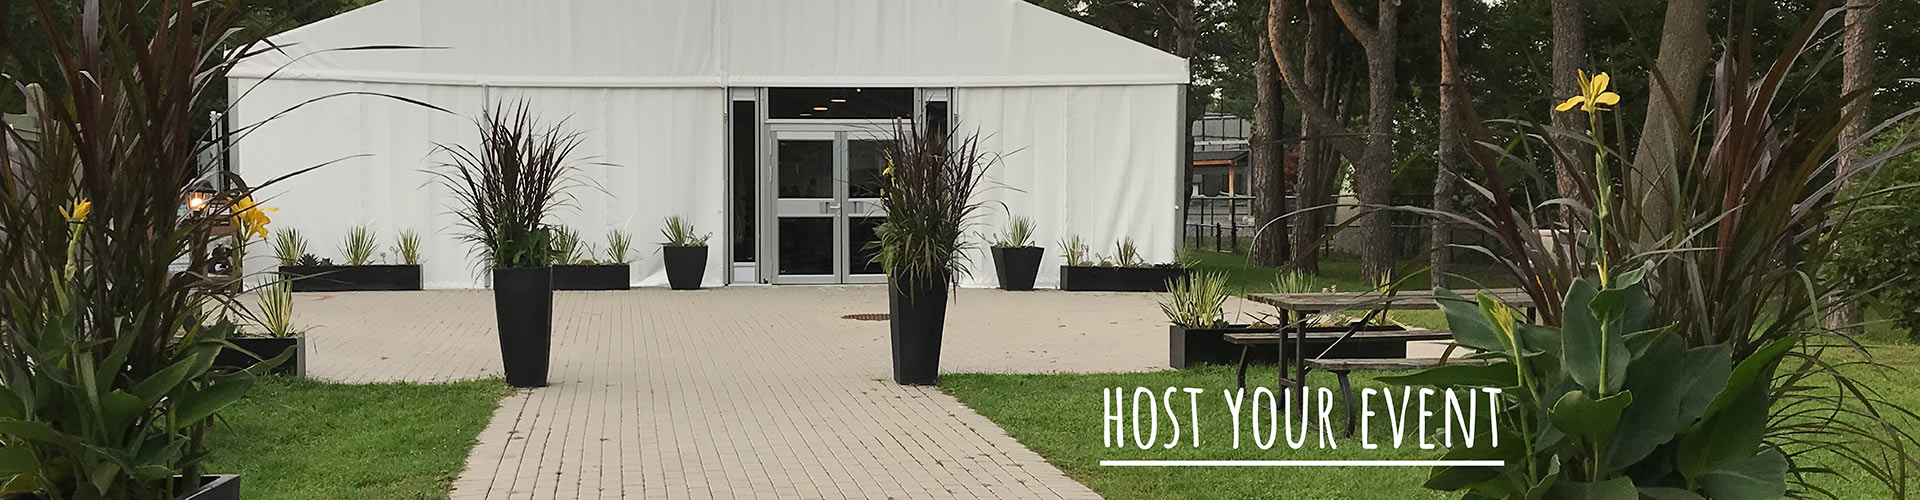 Host Your Event